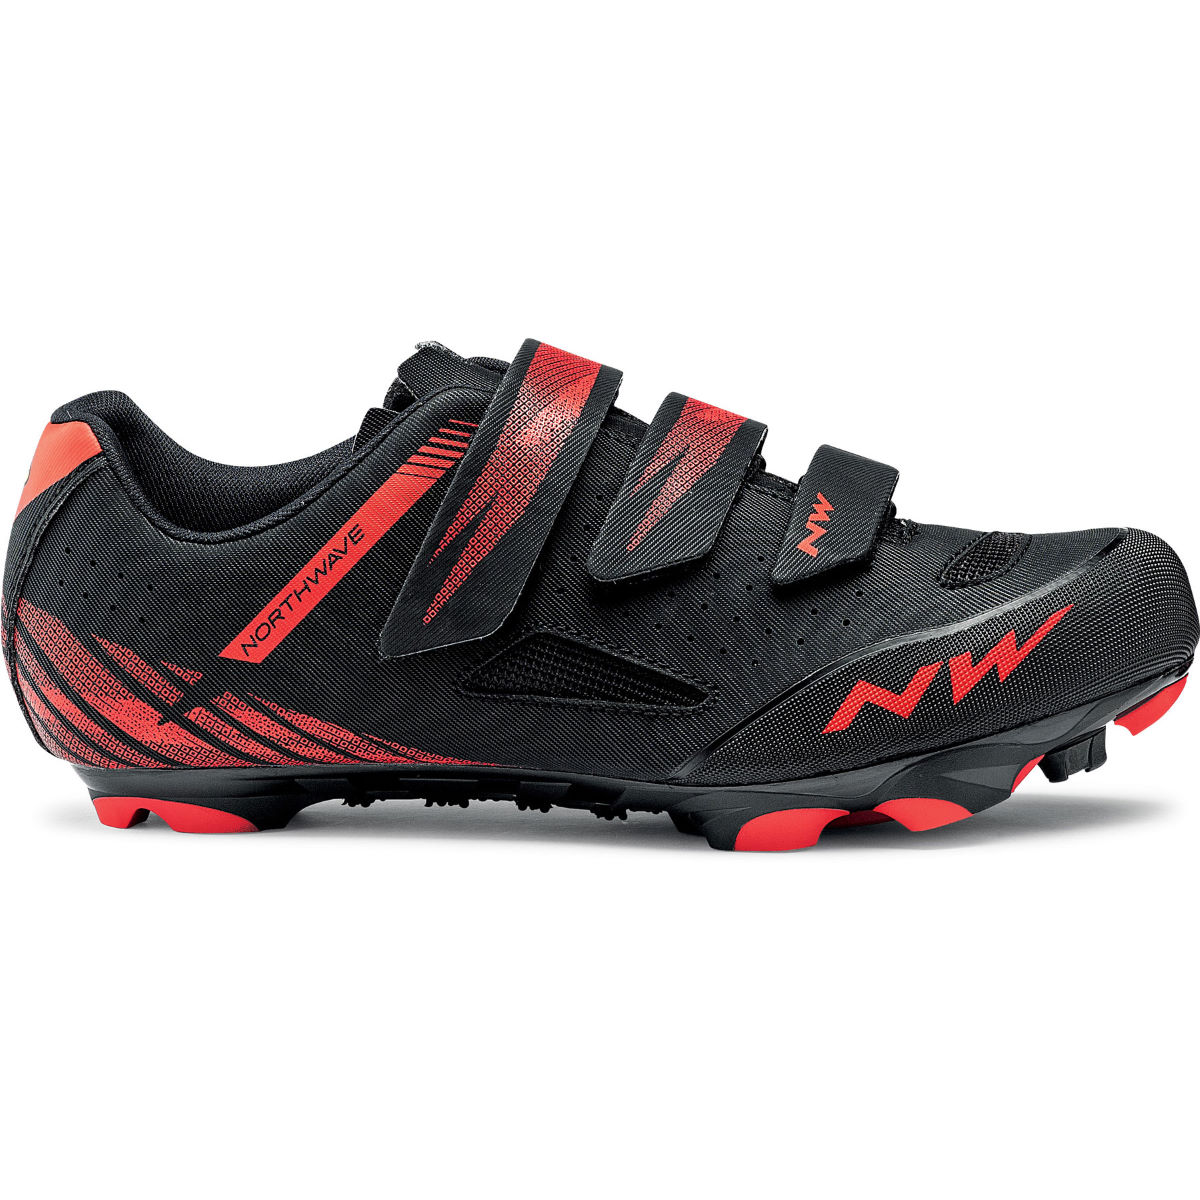 Northwave Northwave Origin MTB Shoes   Cycling Shoes